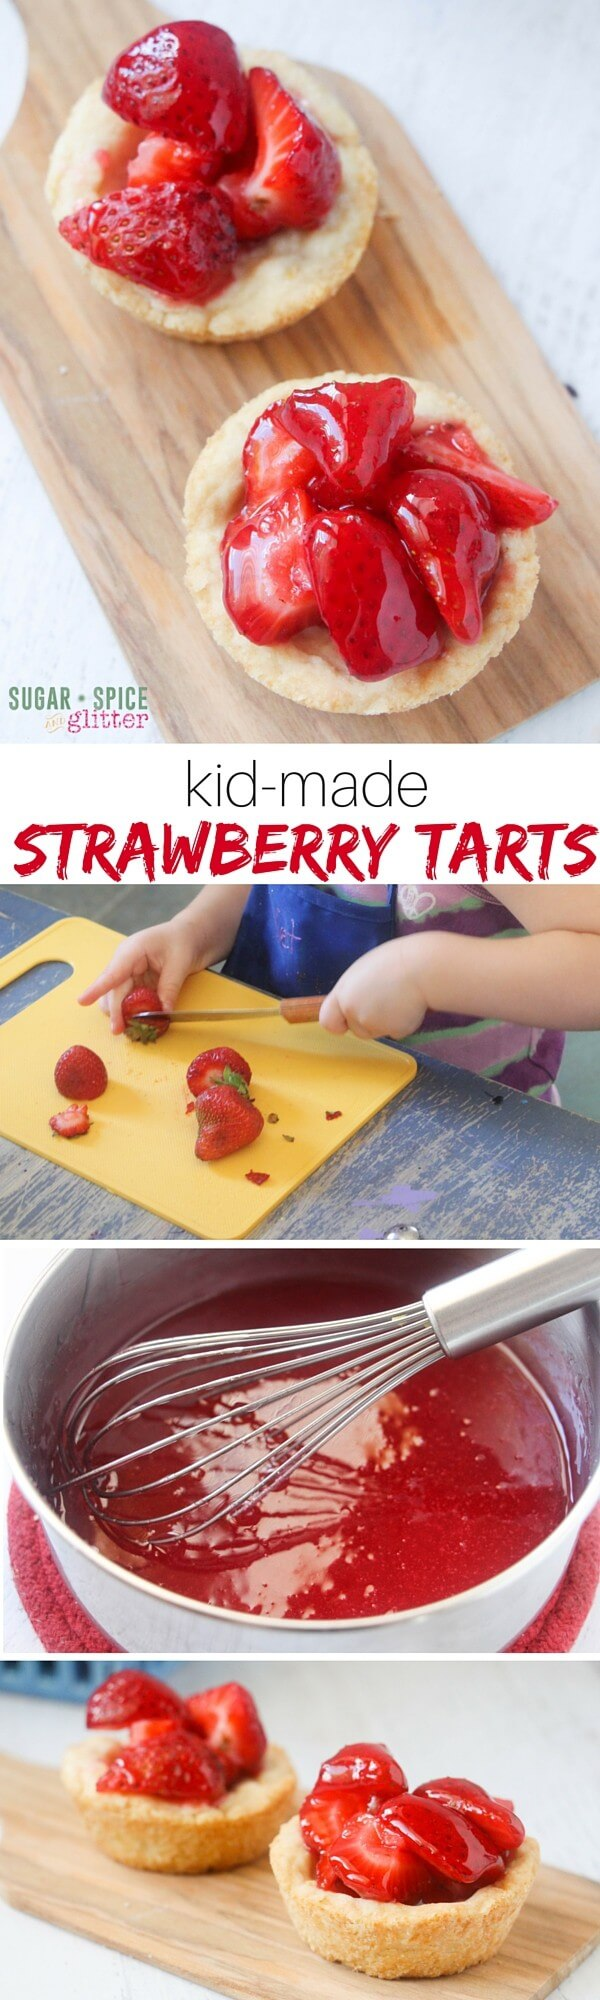 These are the perfect kid-made strawberry tarts, with a fail-proof pie crust and easy glaze. The buttery crust melts in your mouth without bing crumbly, while the strawberries remain crisp and juicy while covered in that perfectly-sweet glaze.